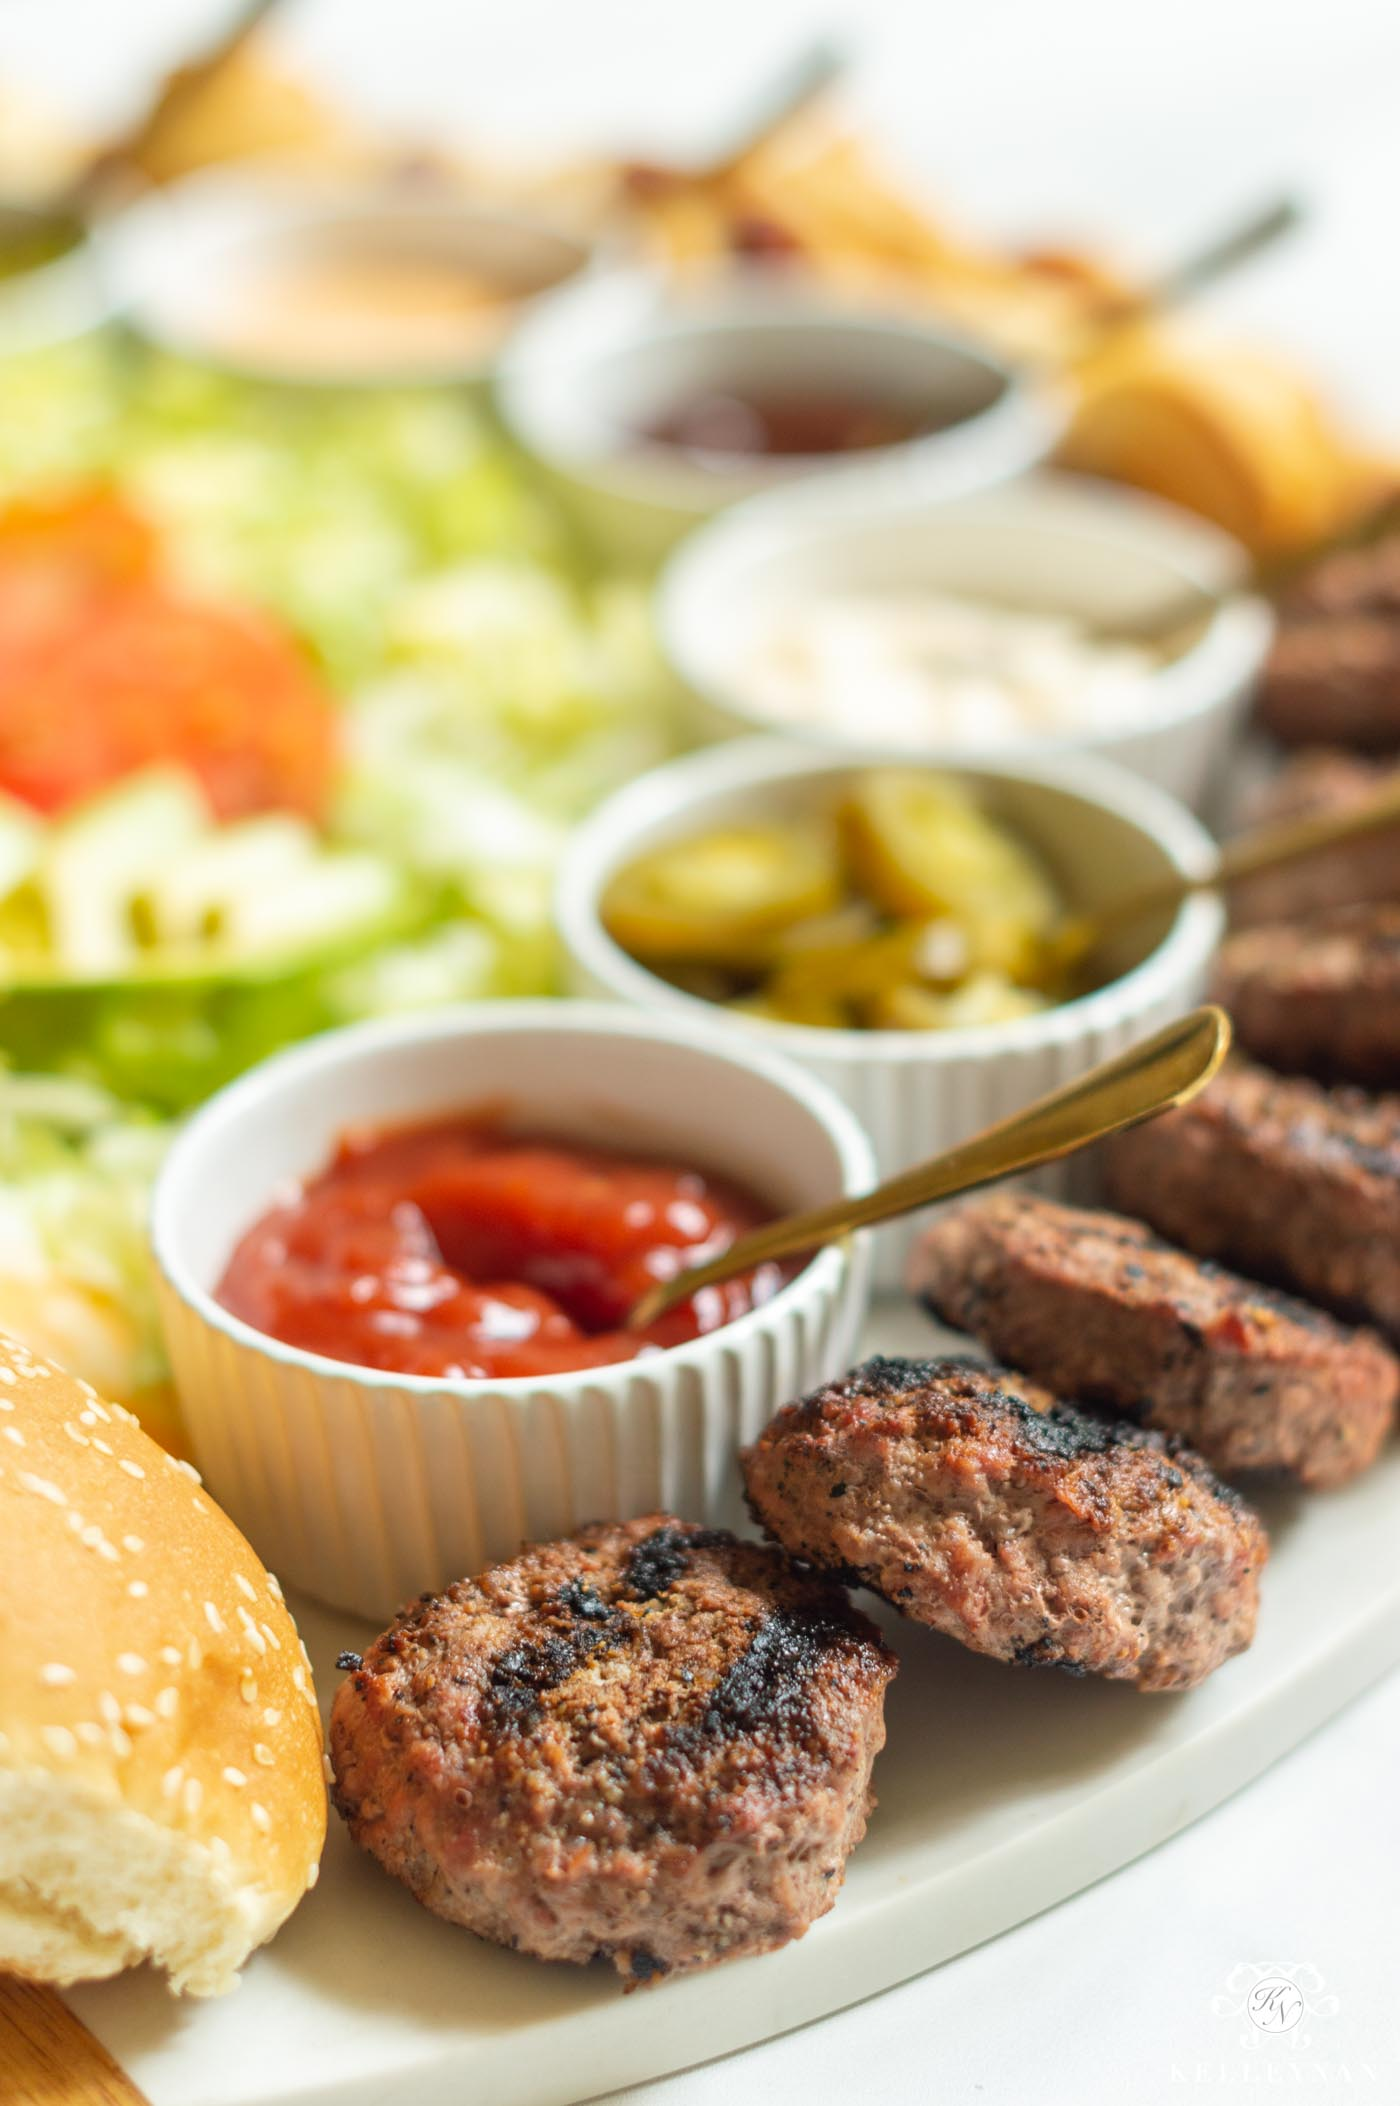 Slider Burger Board for Your Next Cookout!